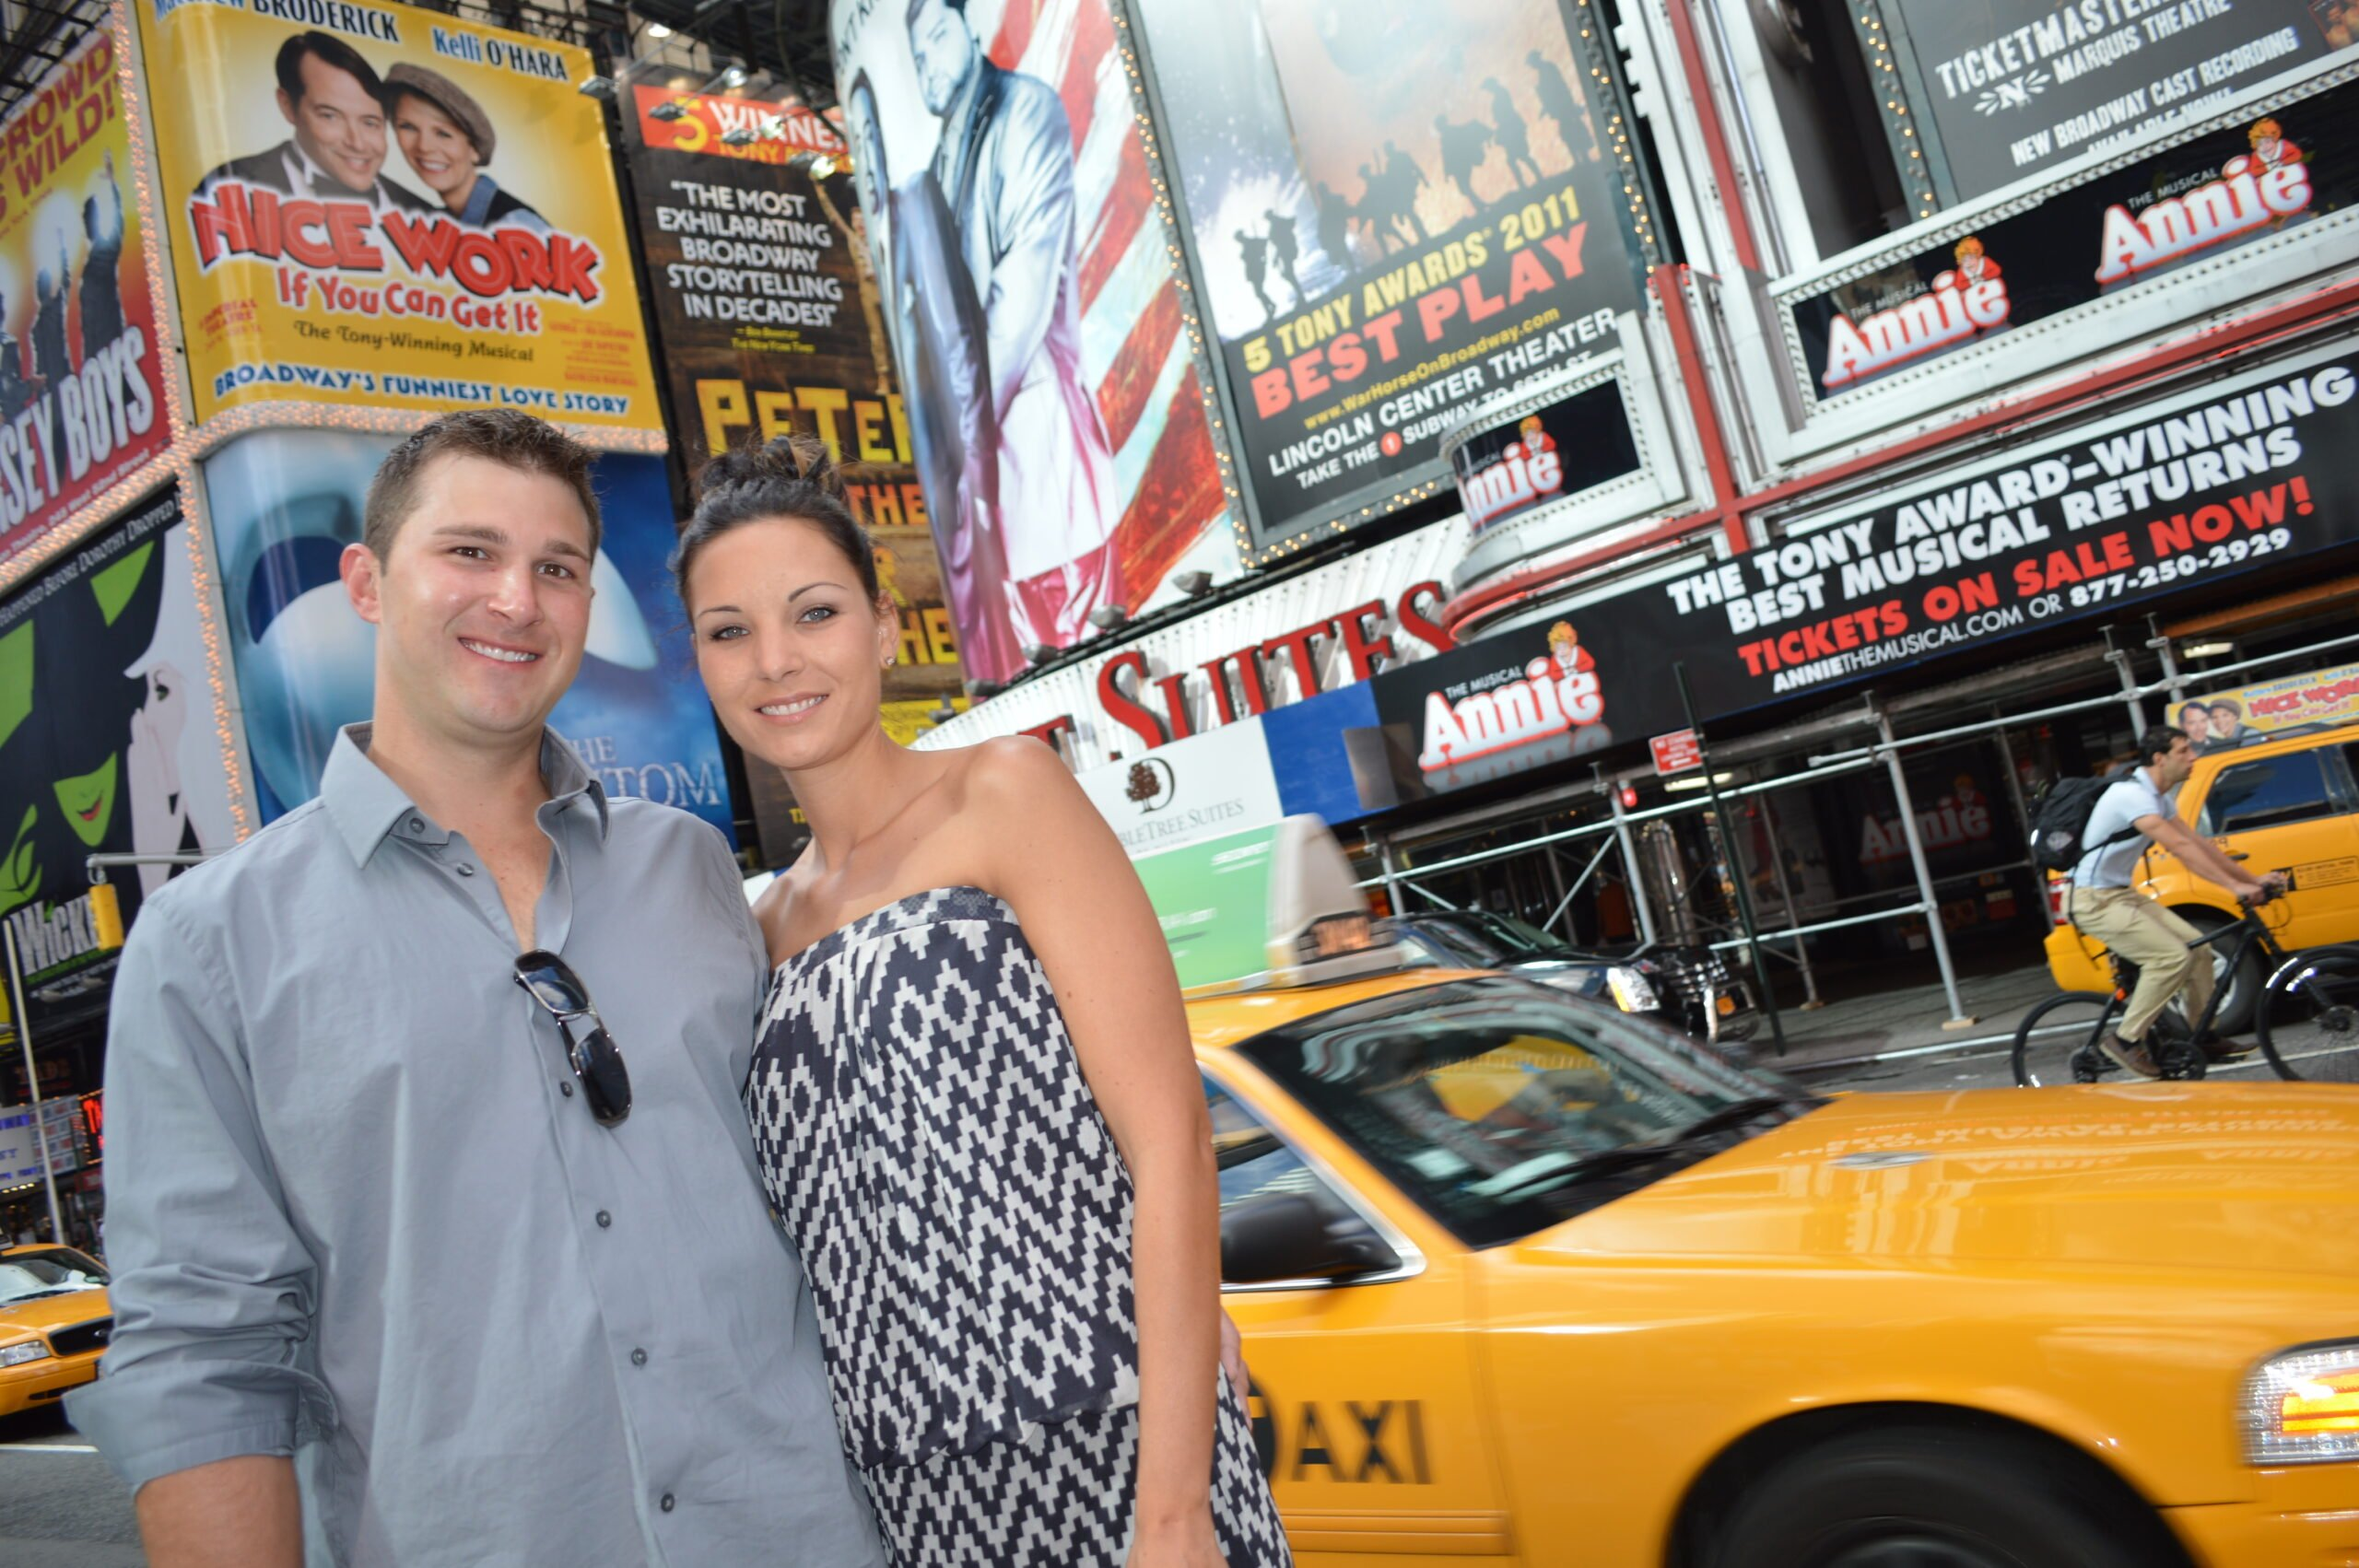 Broadway NYC cabs during photo tour